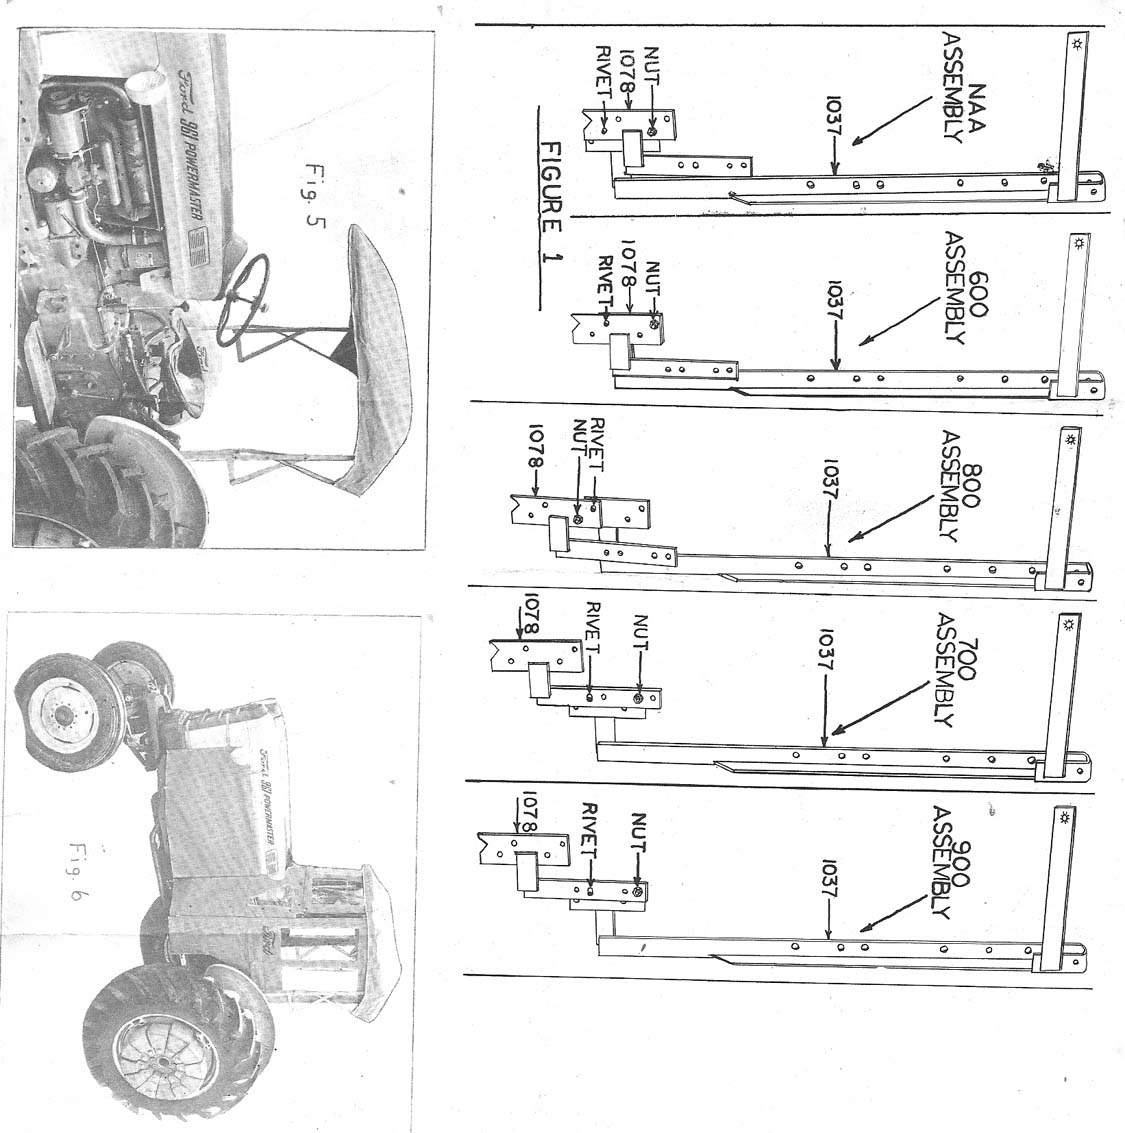 ford 3930 transmission parts diagram  ford  auto wiring